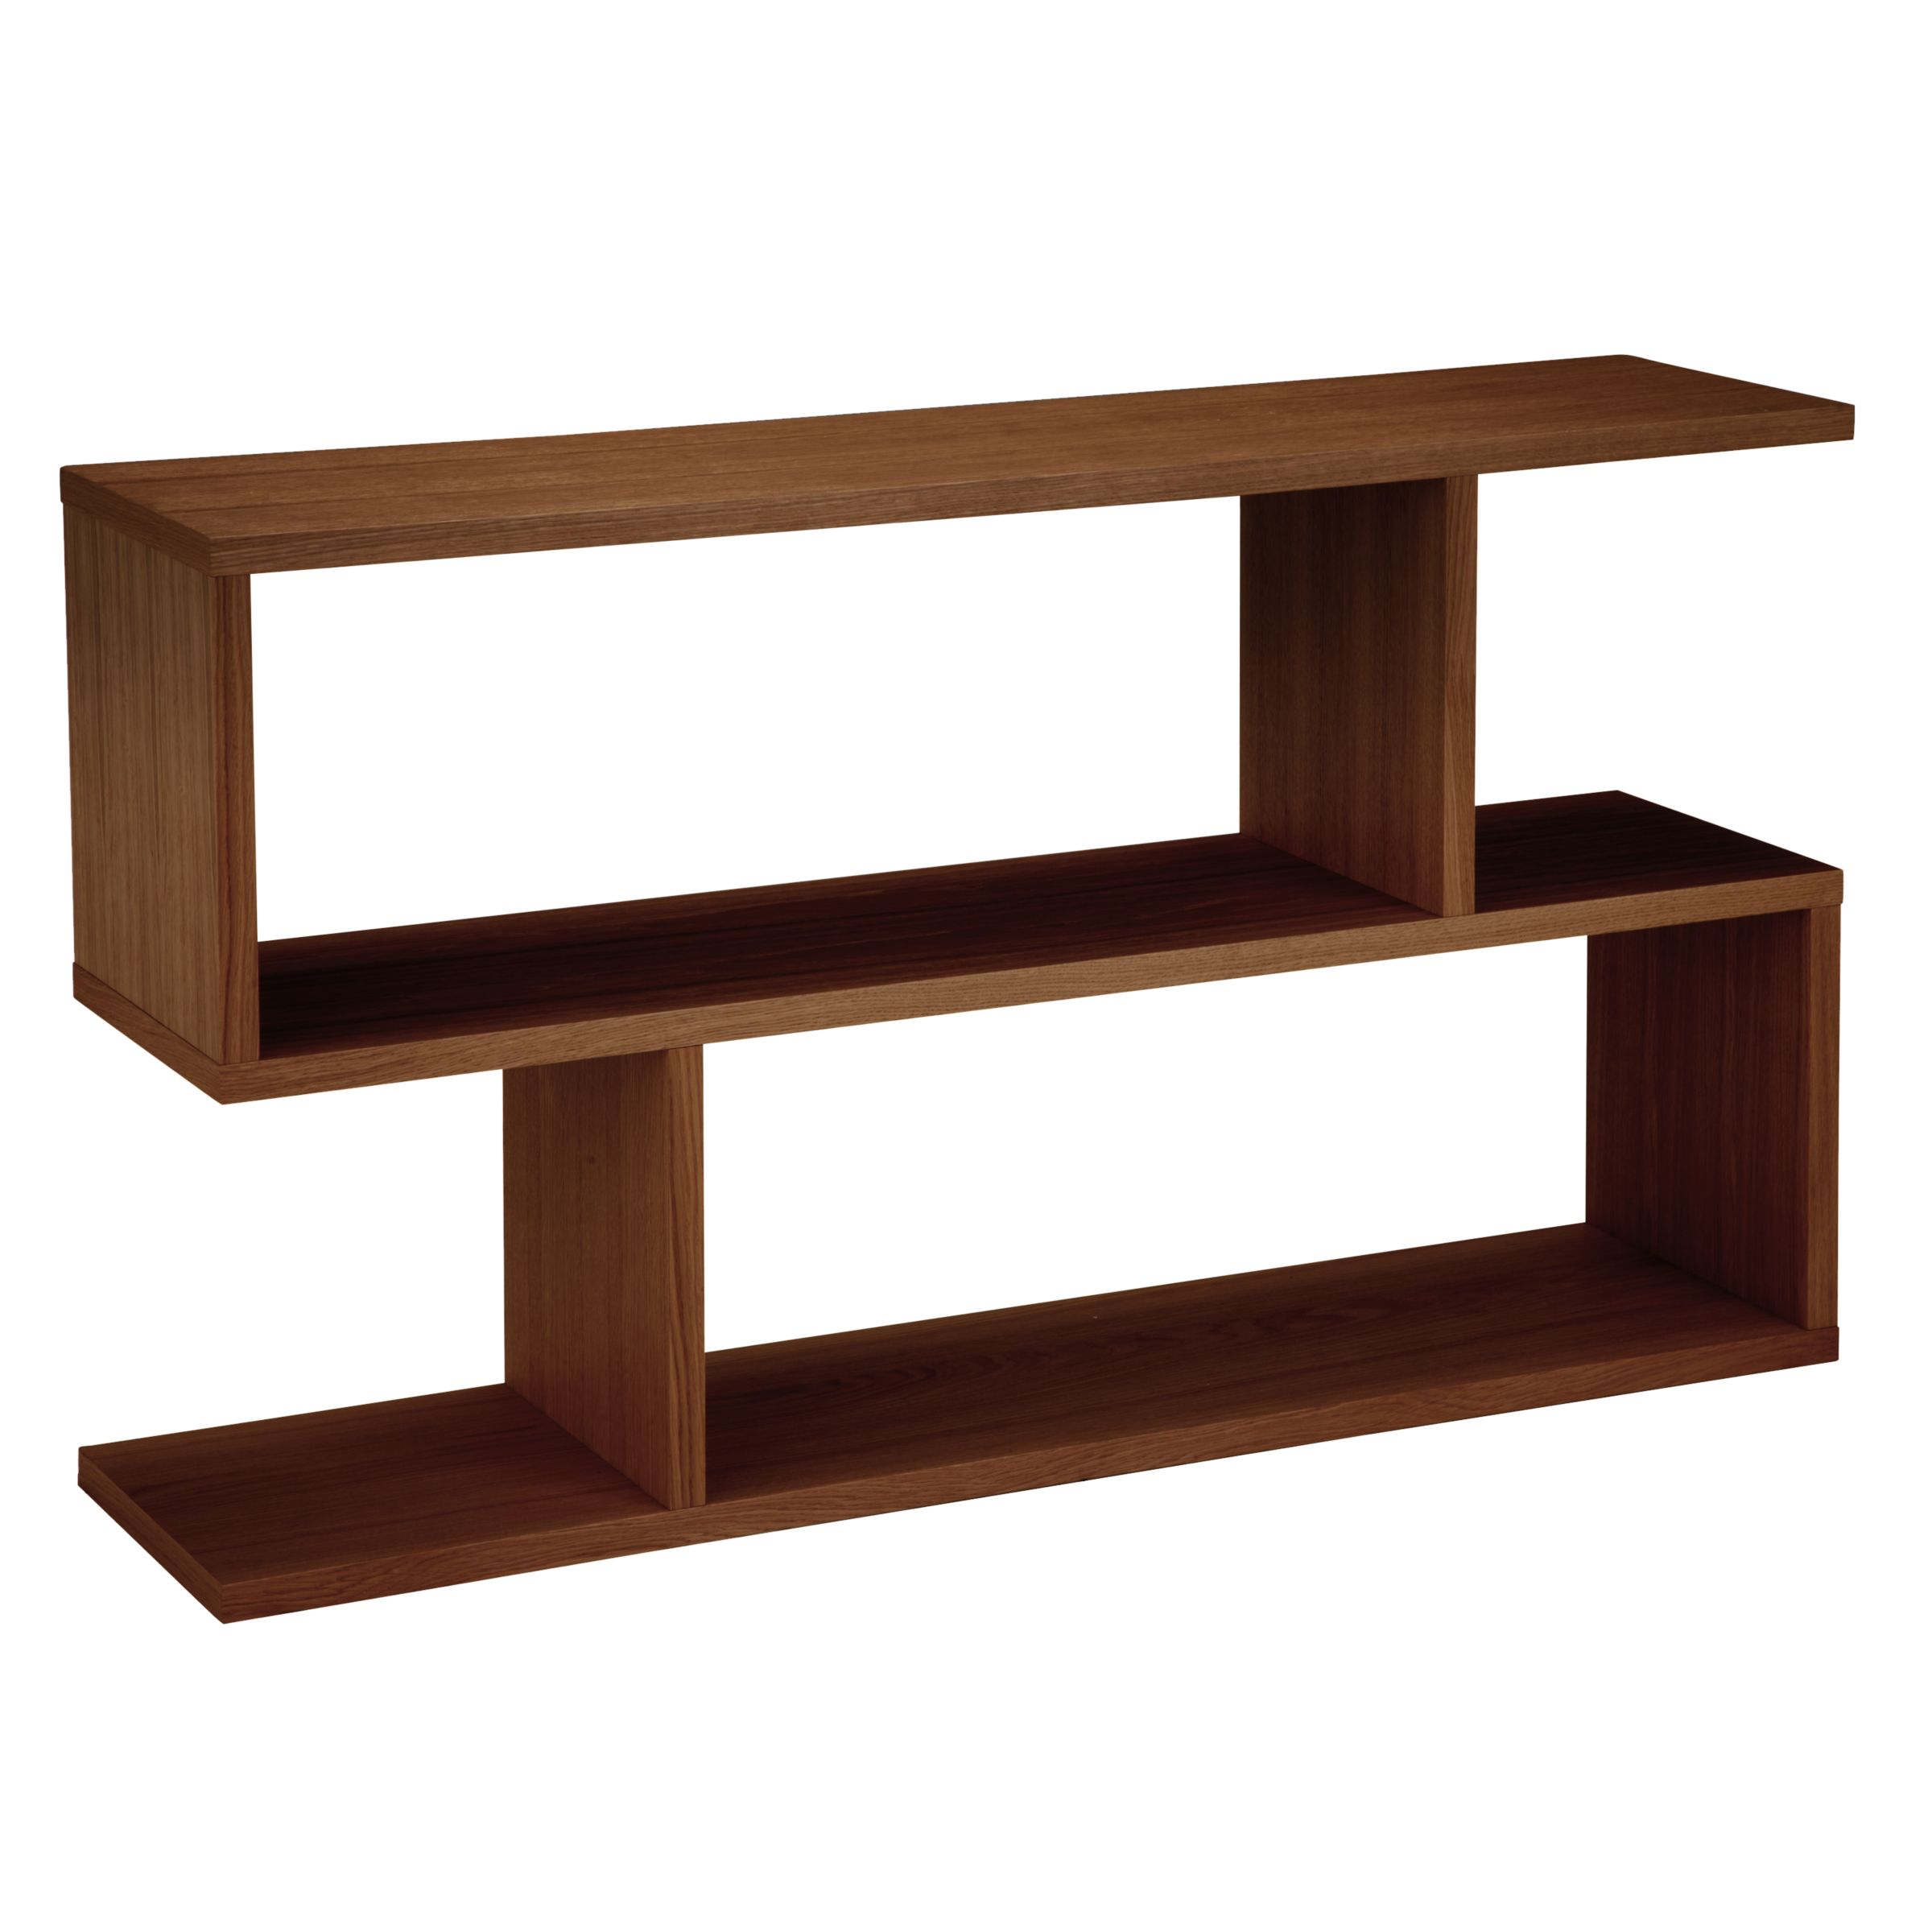 Content by Terence Conran Content by Terence Conran Balance Console Table/Low Shelving